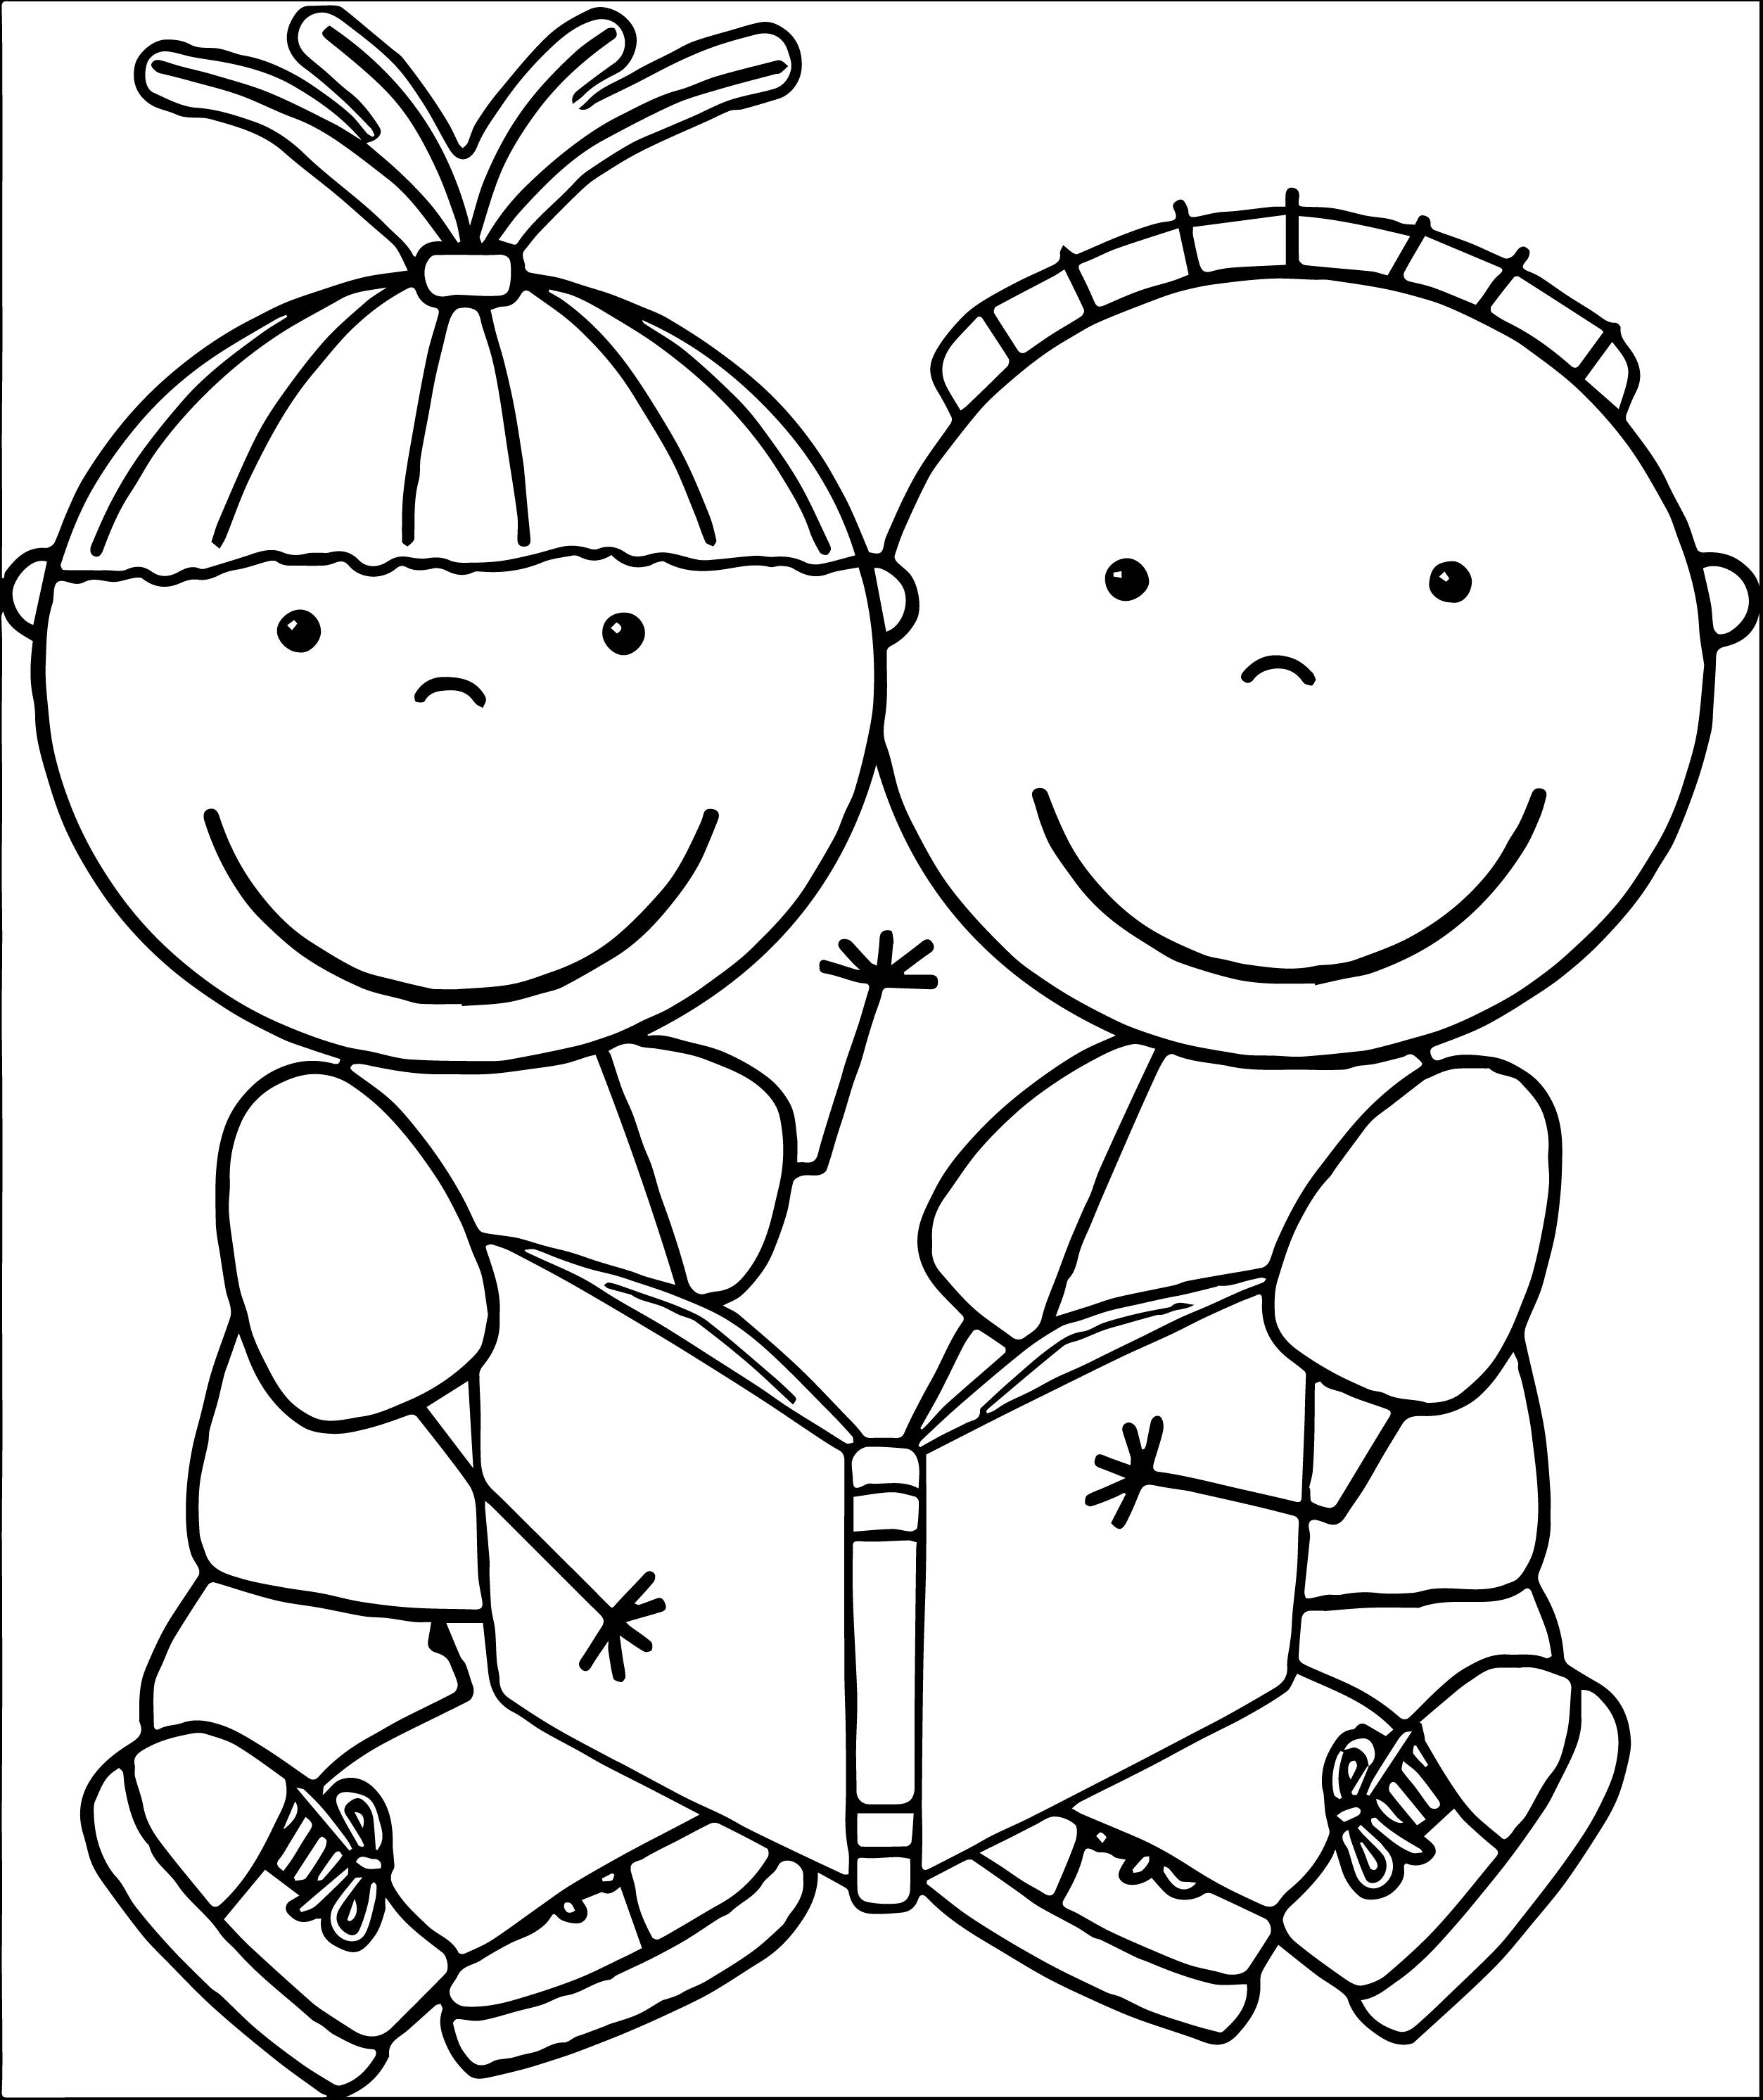 art coloring pages for kids - photo#6